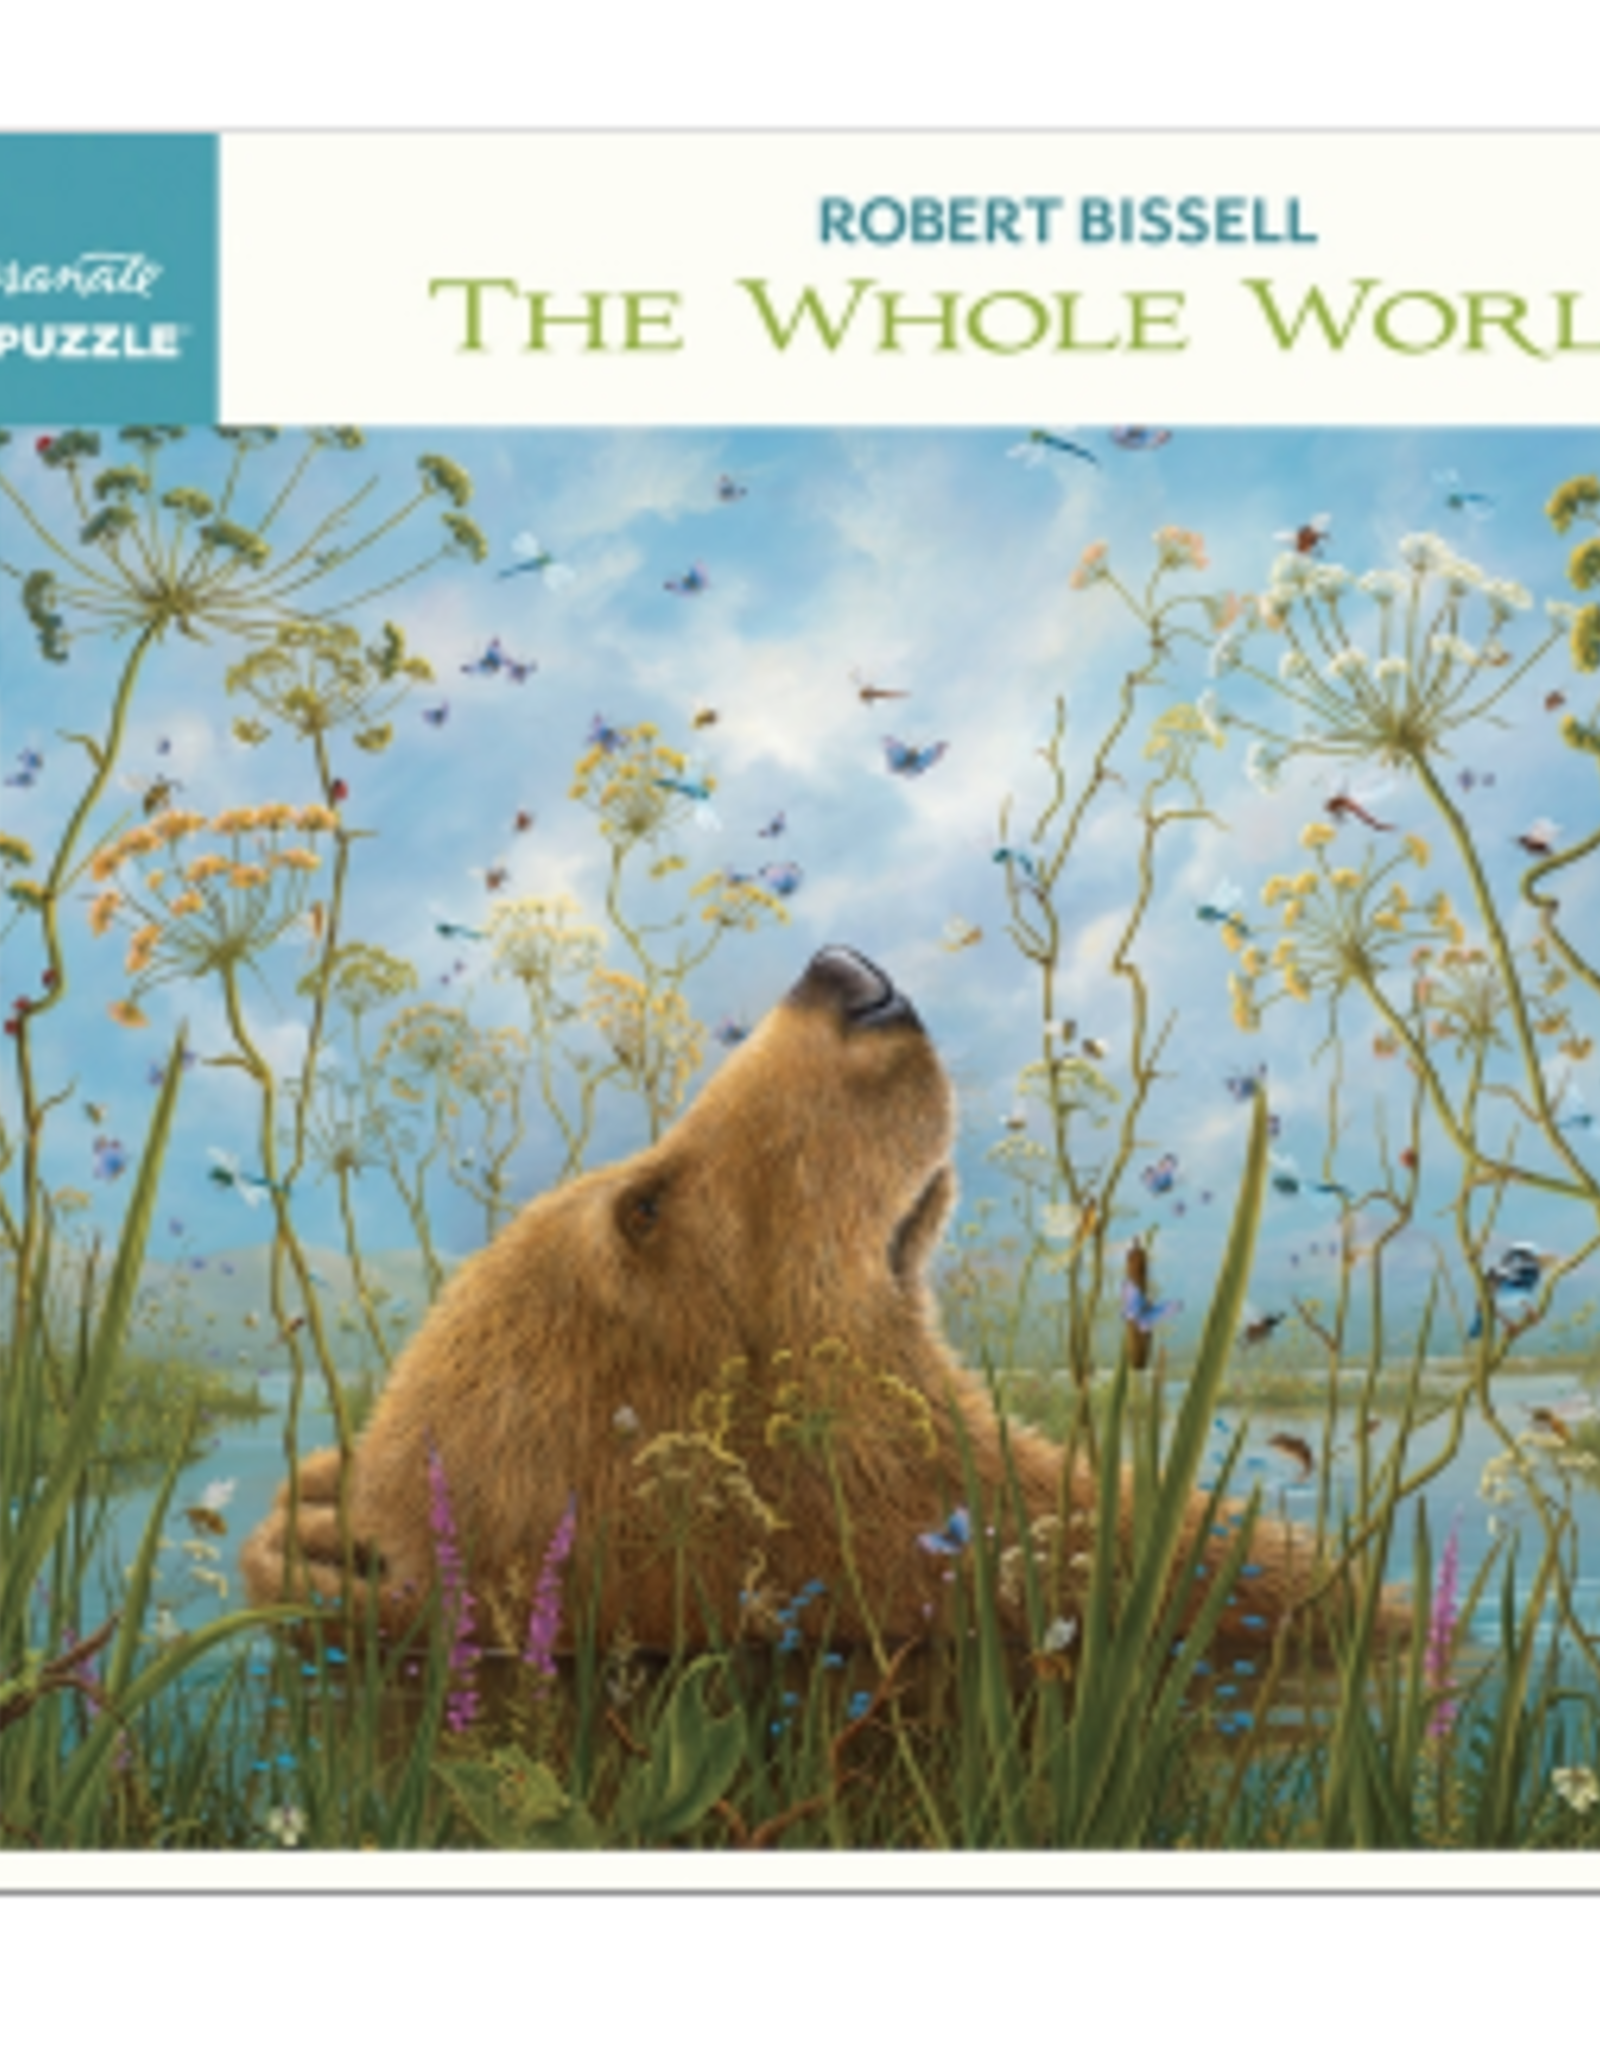 POMEGRANATE 1000 Pc Puzzle-Robert Bissell The Whole World